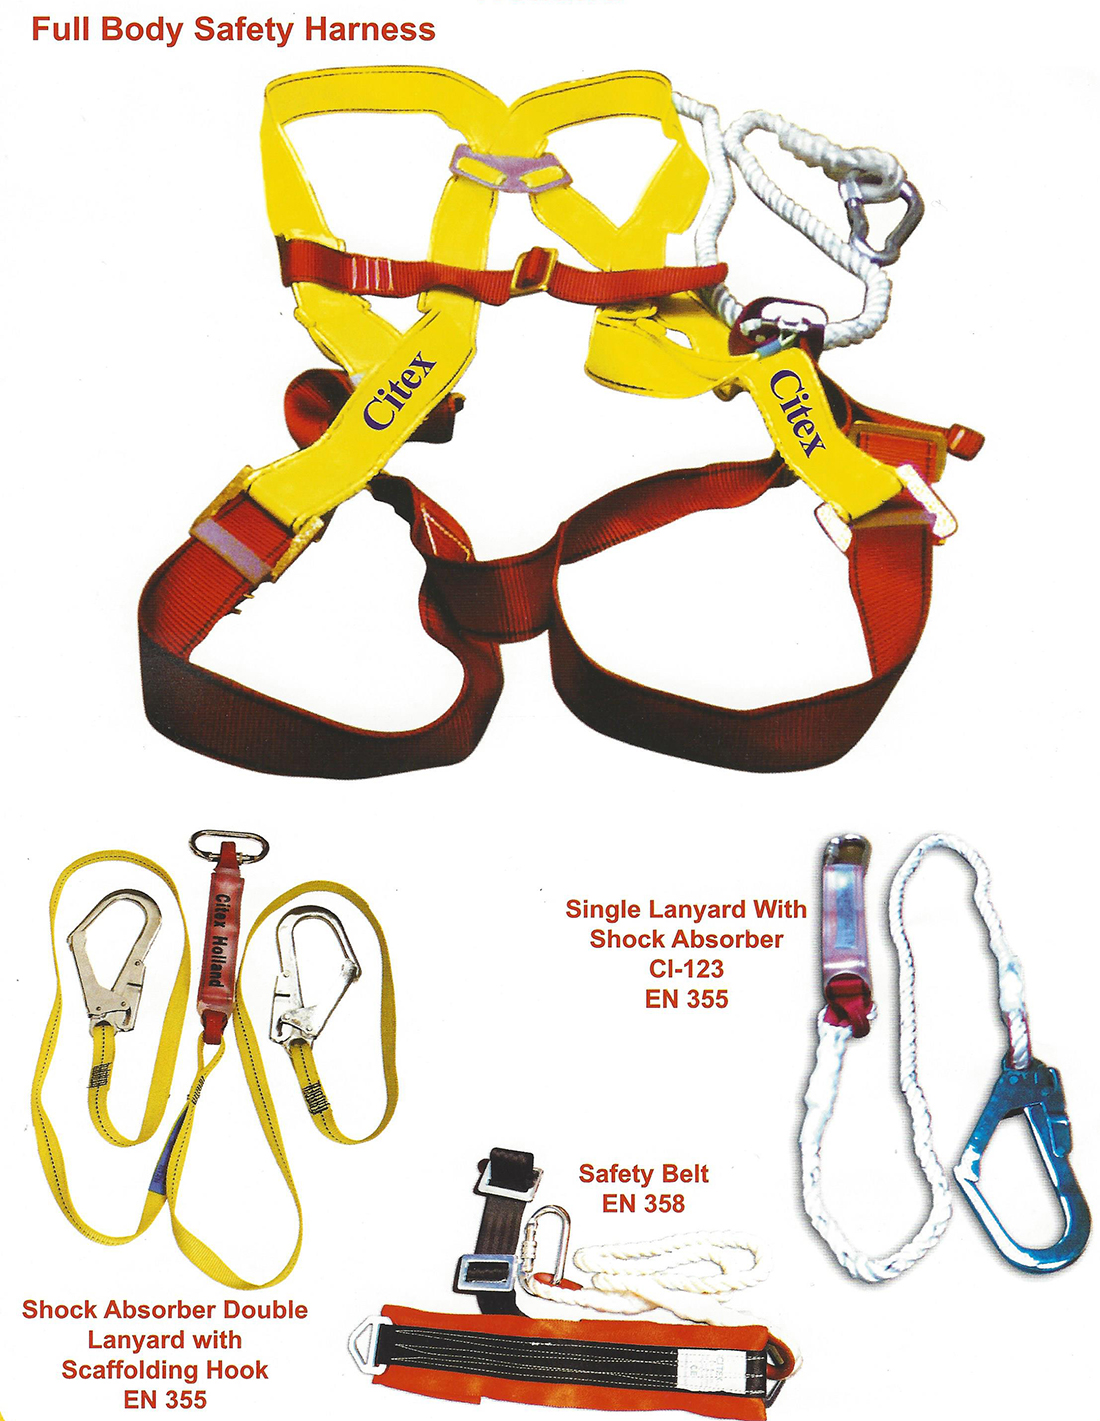 SAFETY HARNESS- CITEX